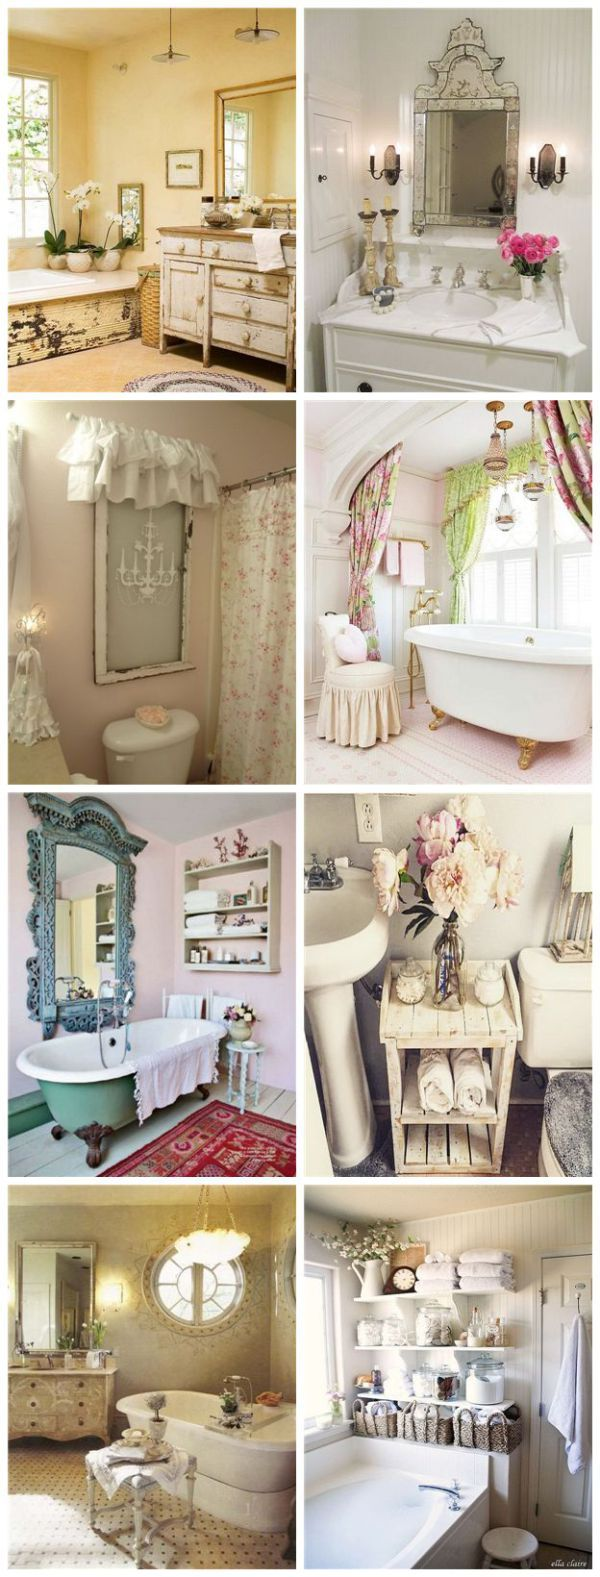 616 best images about Shabby Chic Bathrooms on Pinterest Shabby